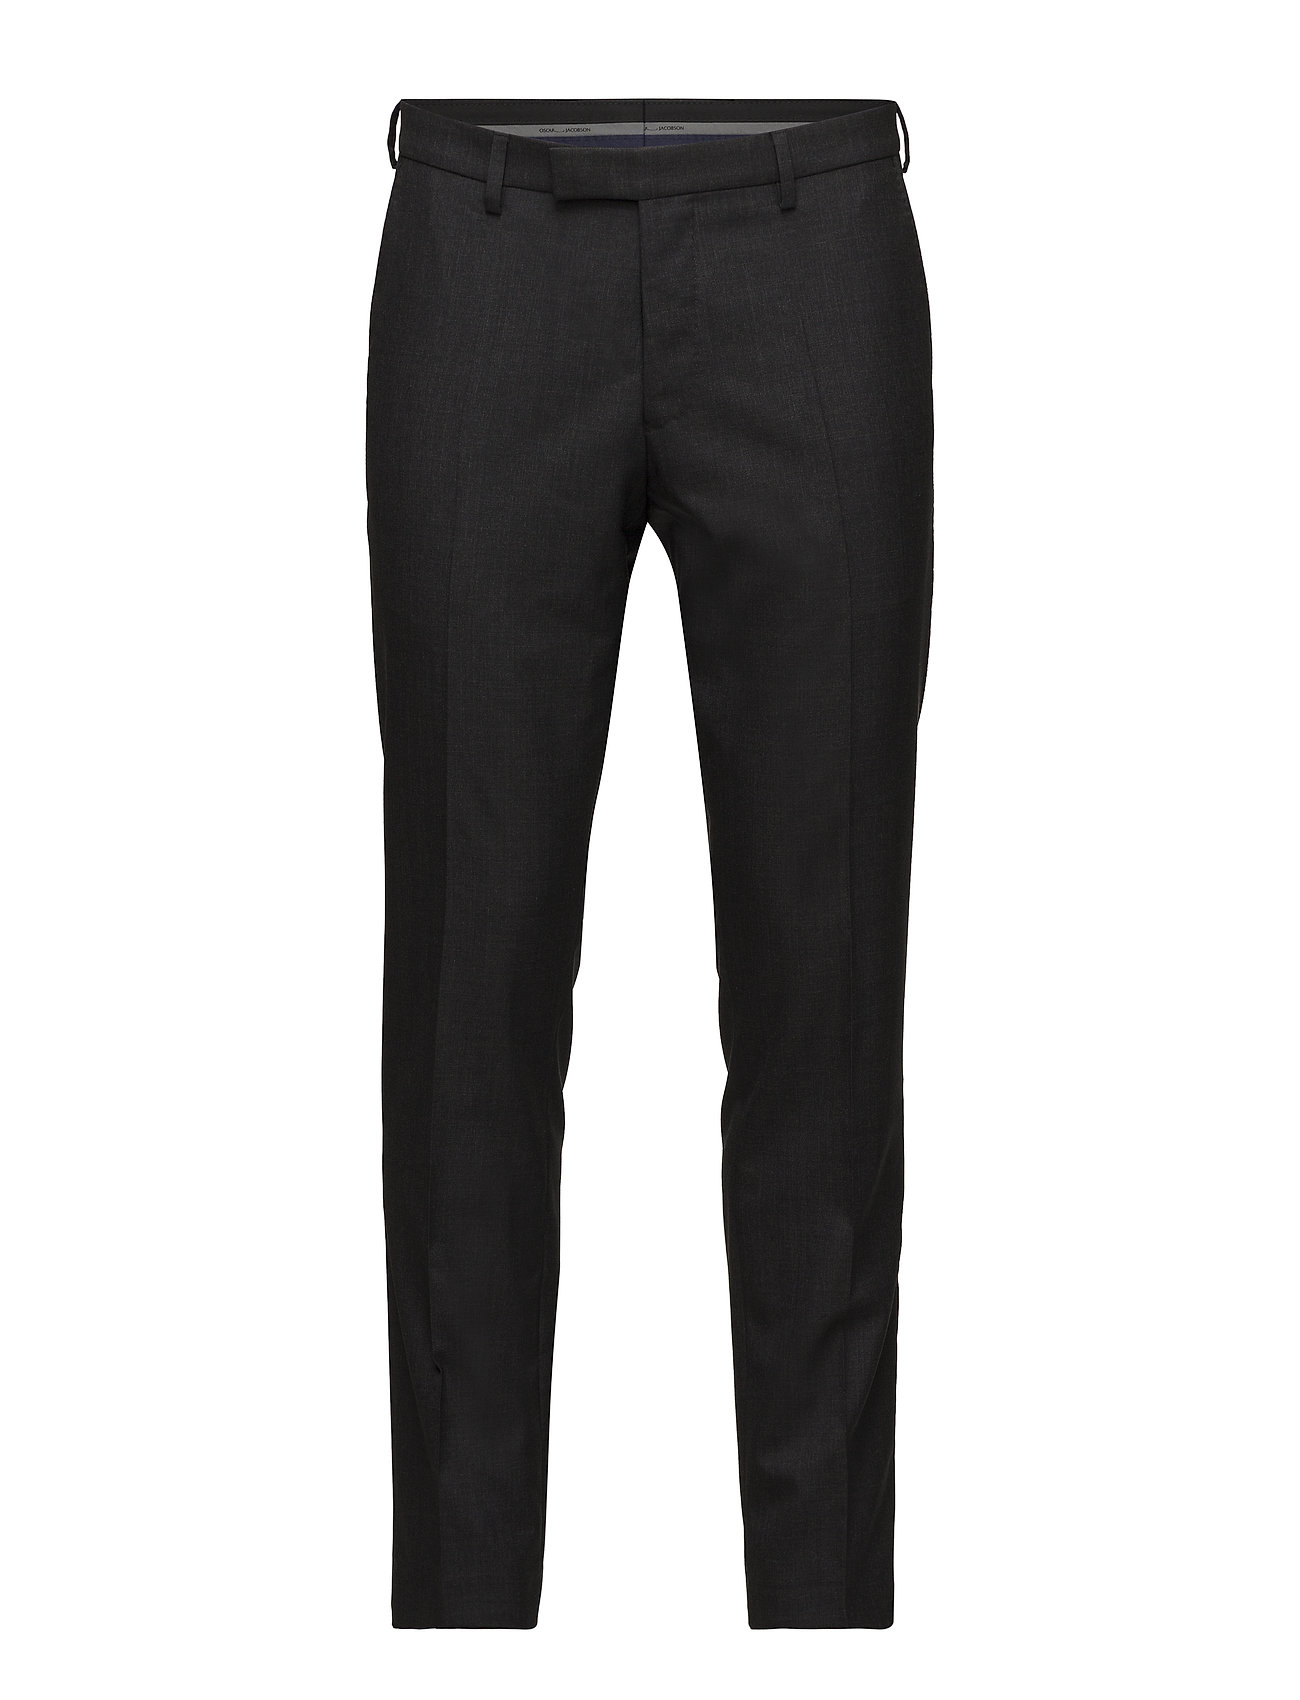 Oscar Jacobson Diego Trousers - 110 - DARK GREY